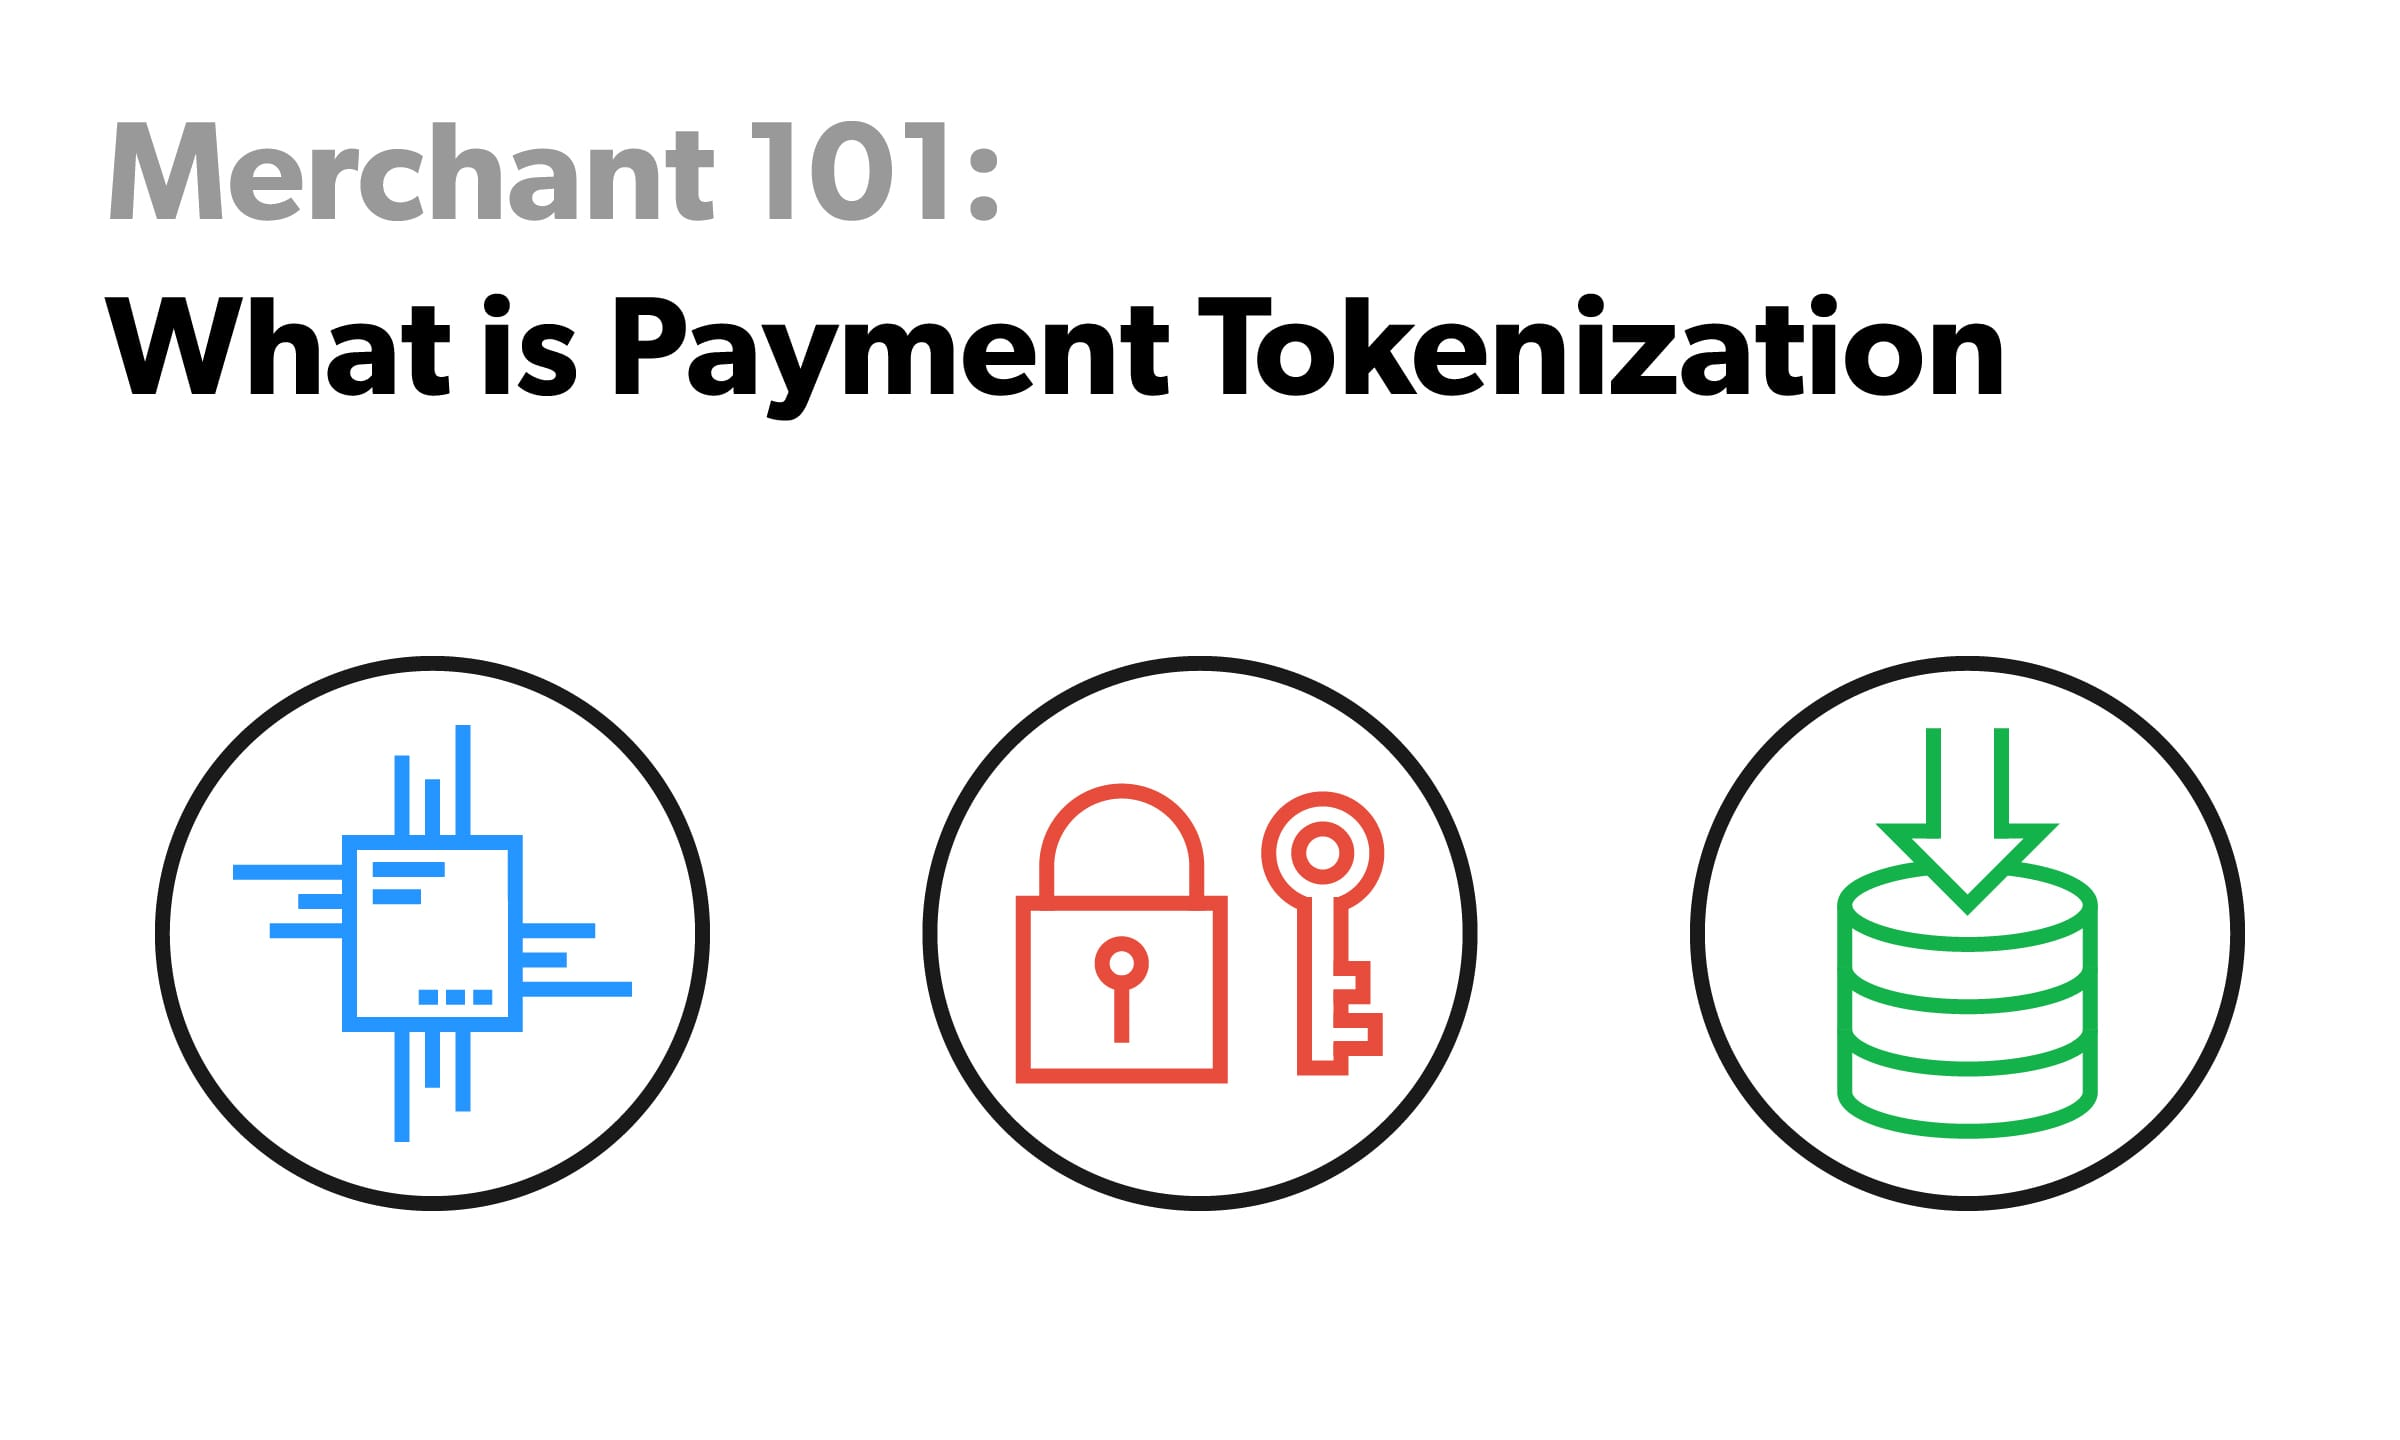 Payment Tokenization Process